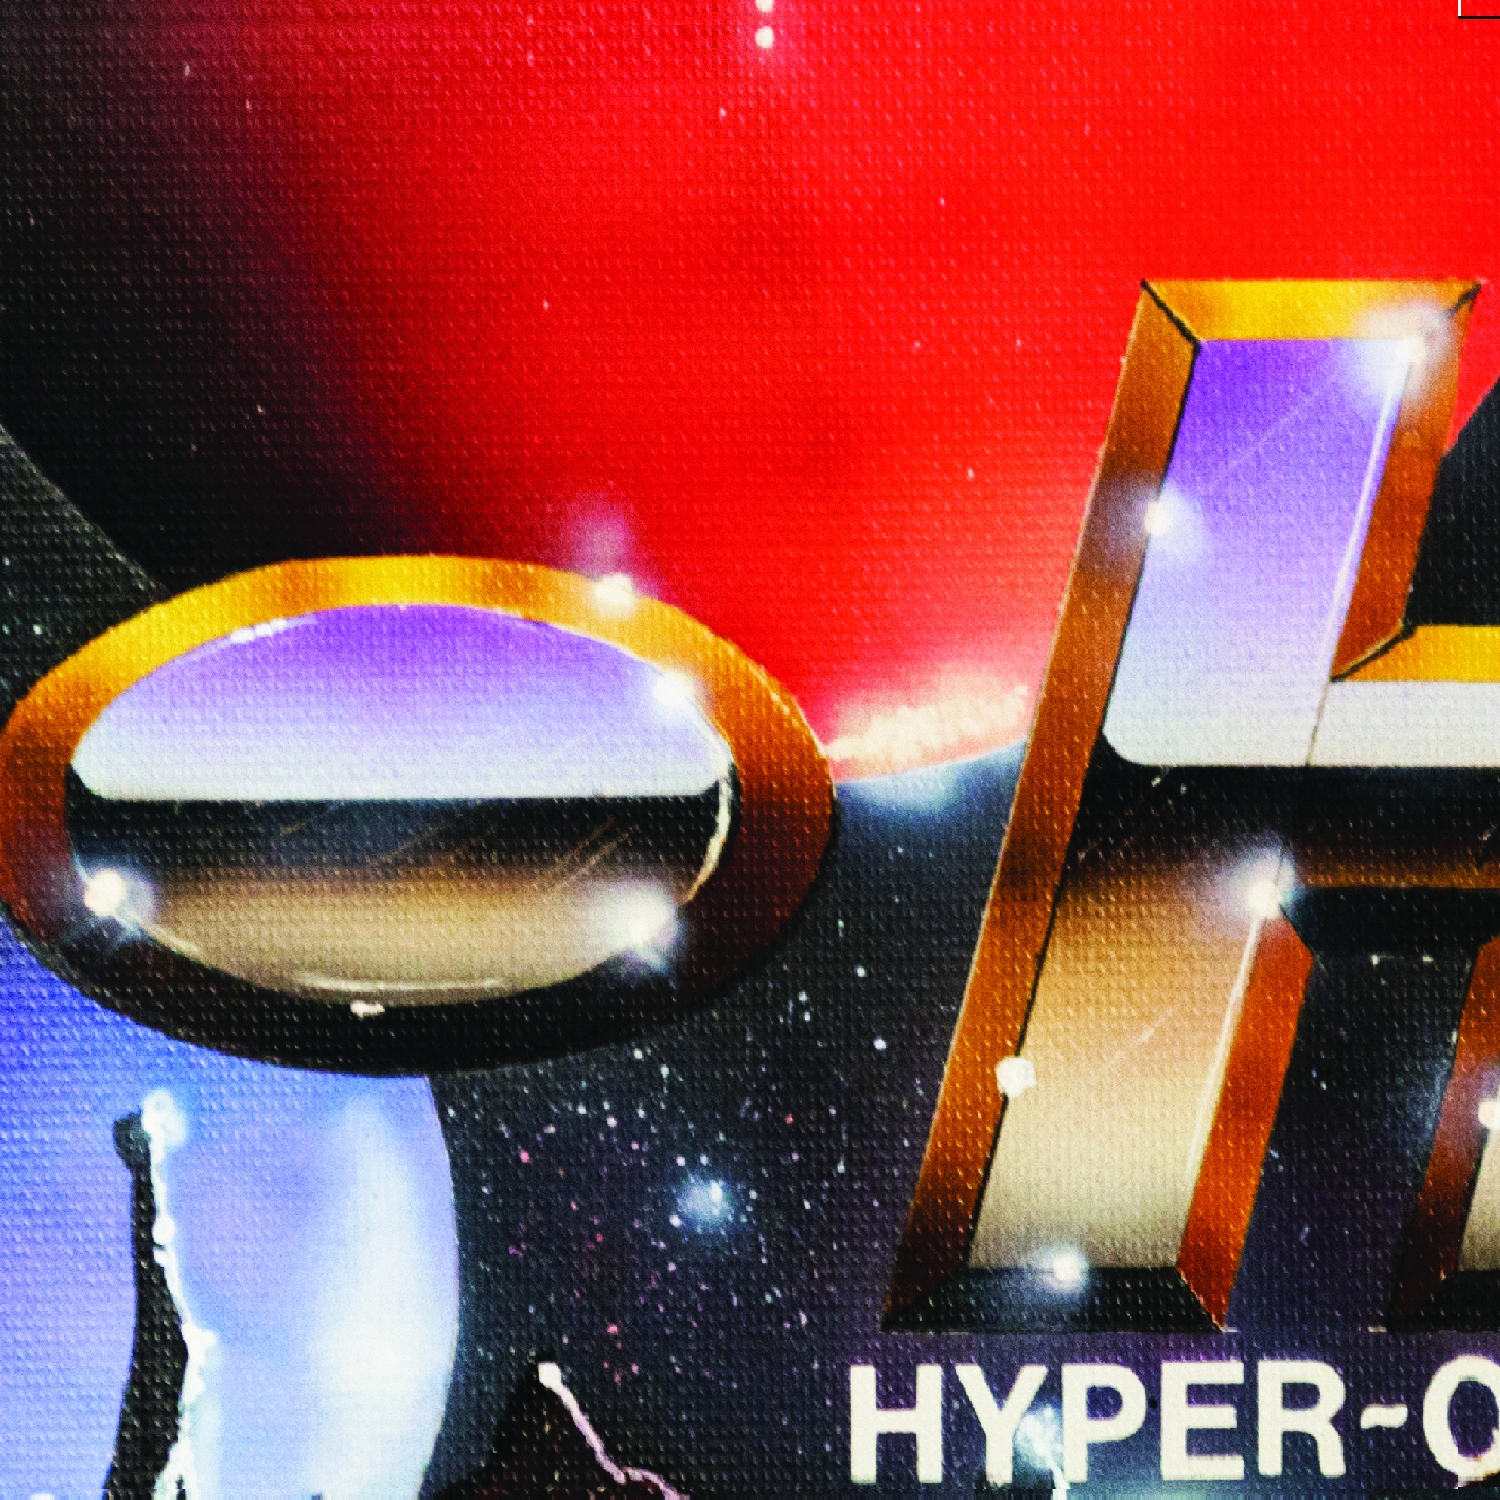 [KFCD025] Hyper-On Experience - Fun For All The Family (Extended) EP (Digital Only)